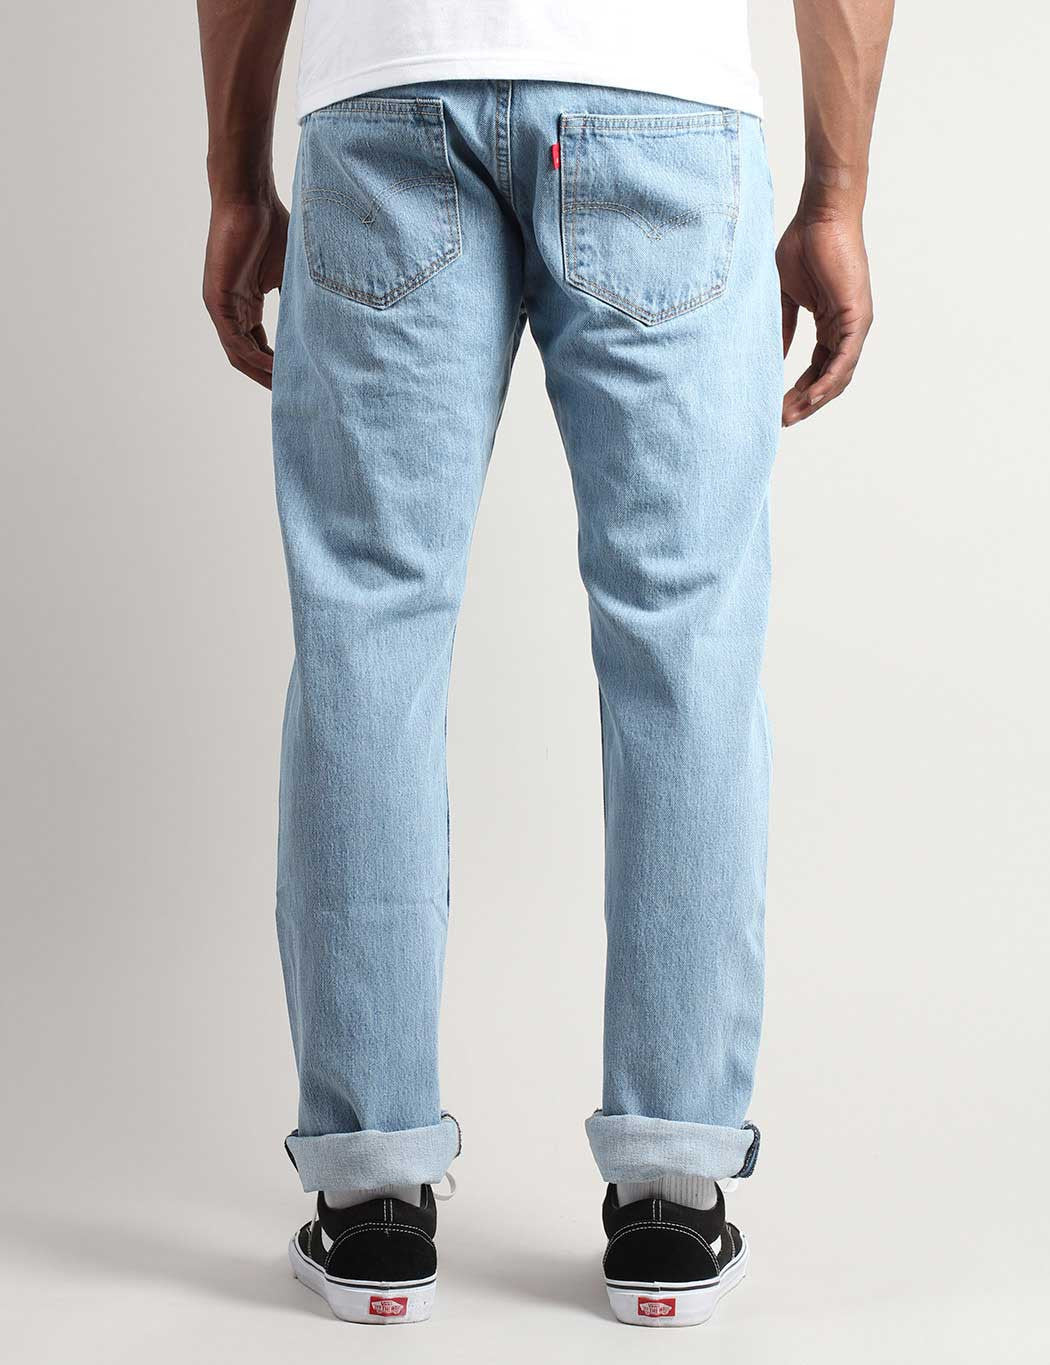 a6f93b29a68 Levis 501 Straight Fit Jeans - Light Broken In  Levis 501 Original ...